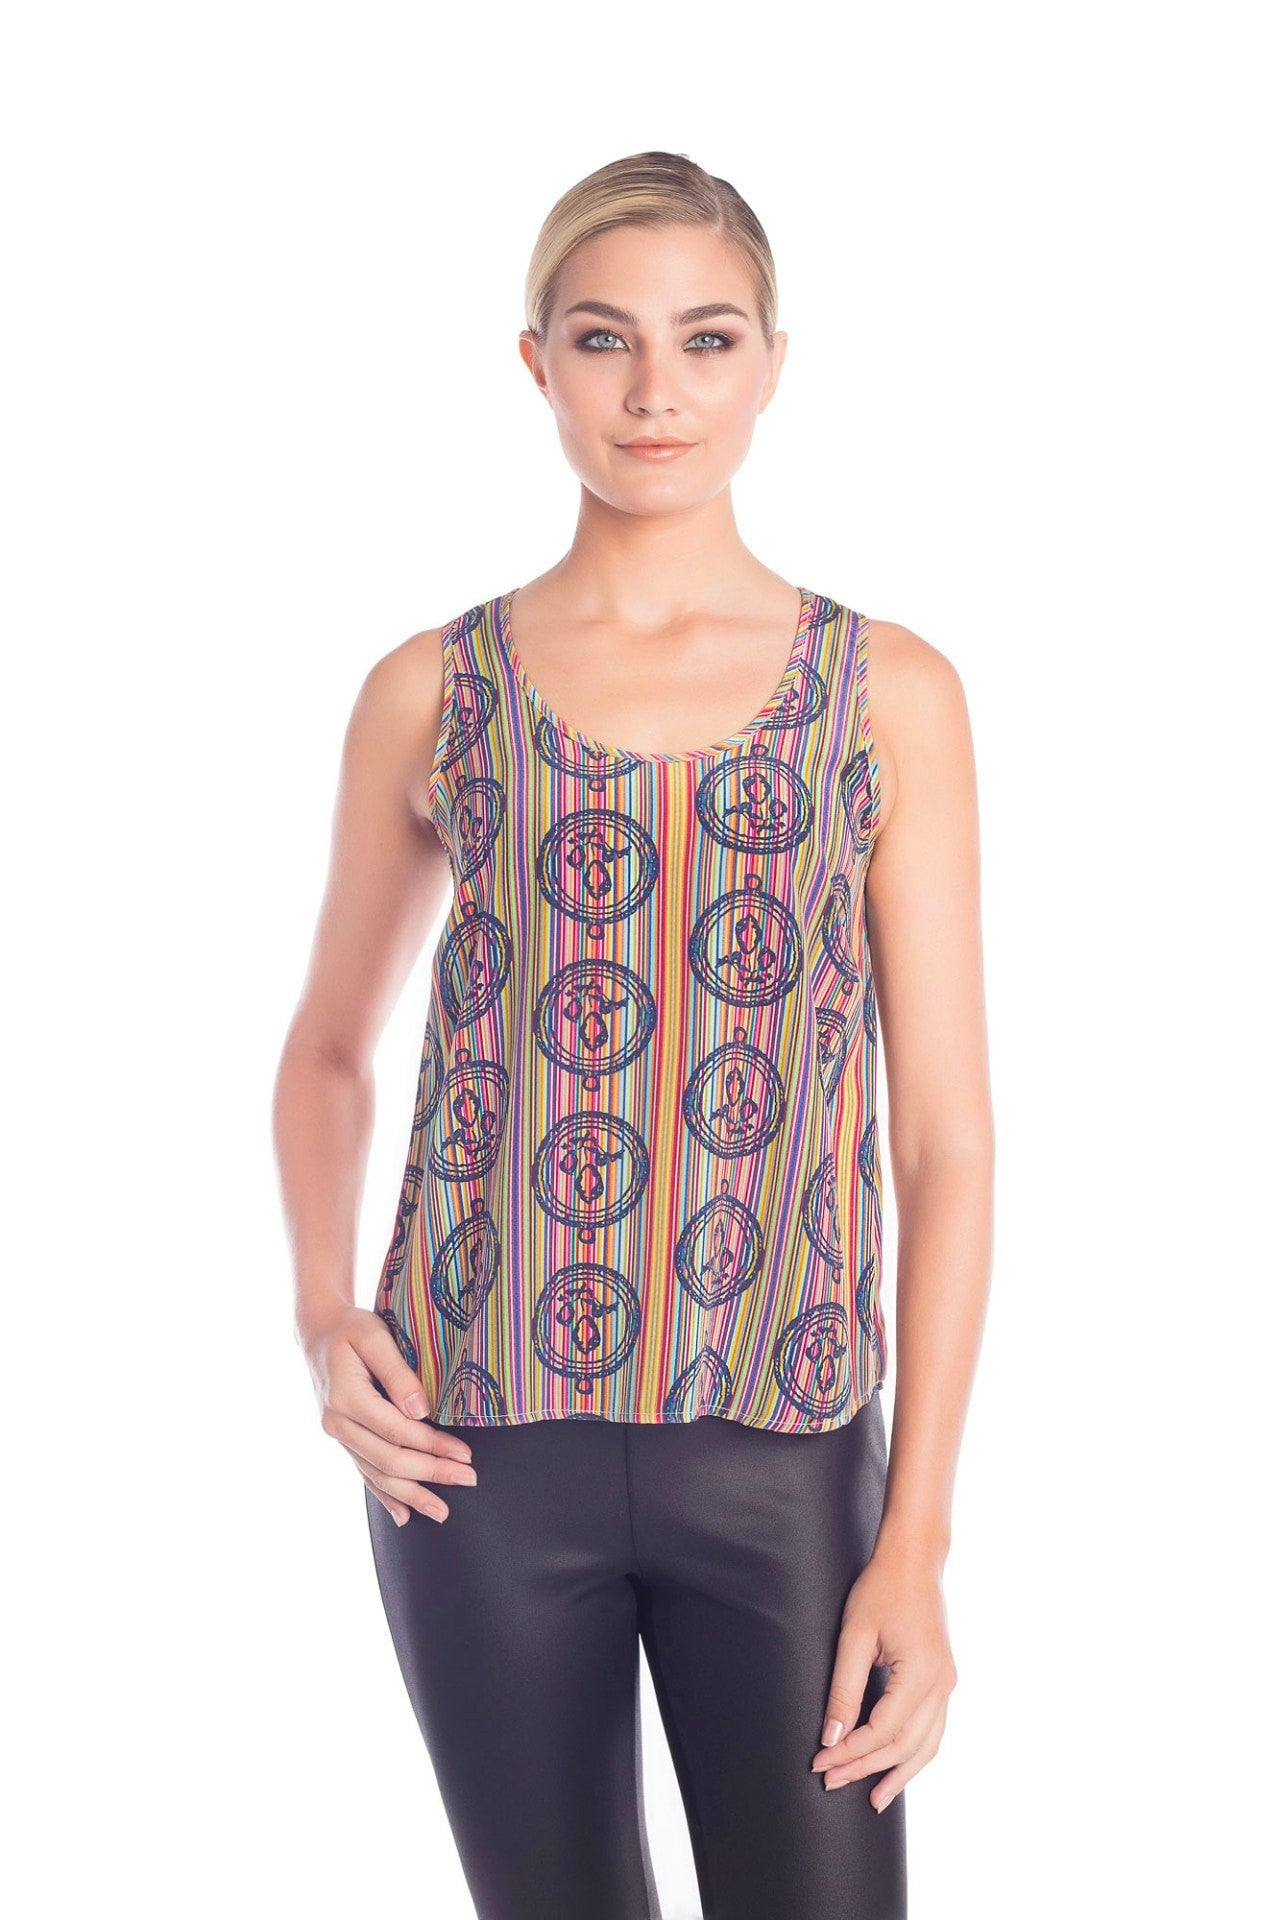 Kinetic Silk Tank Top - Prisma Print Tank Tops - artTECA